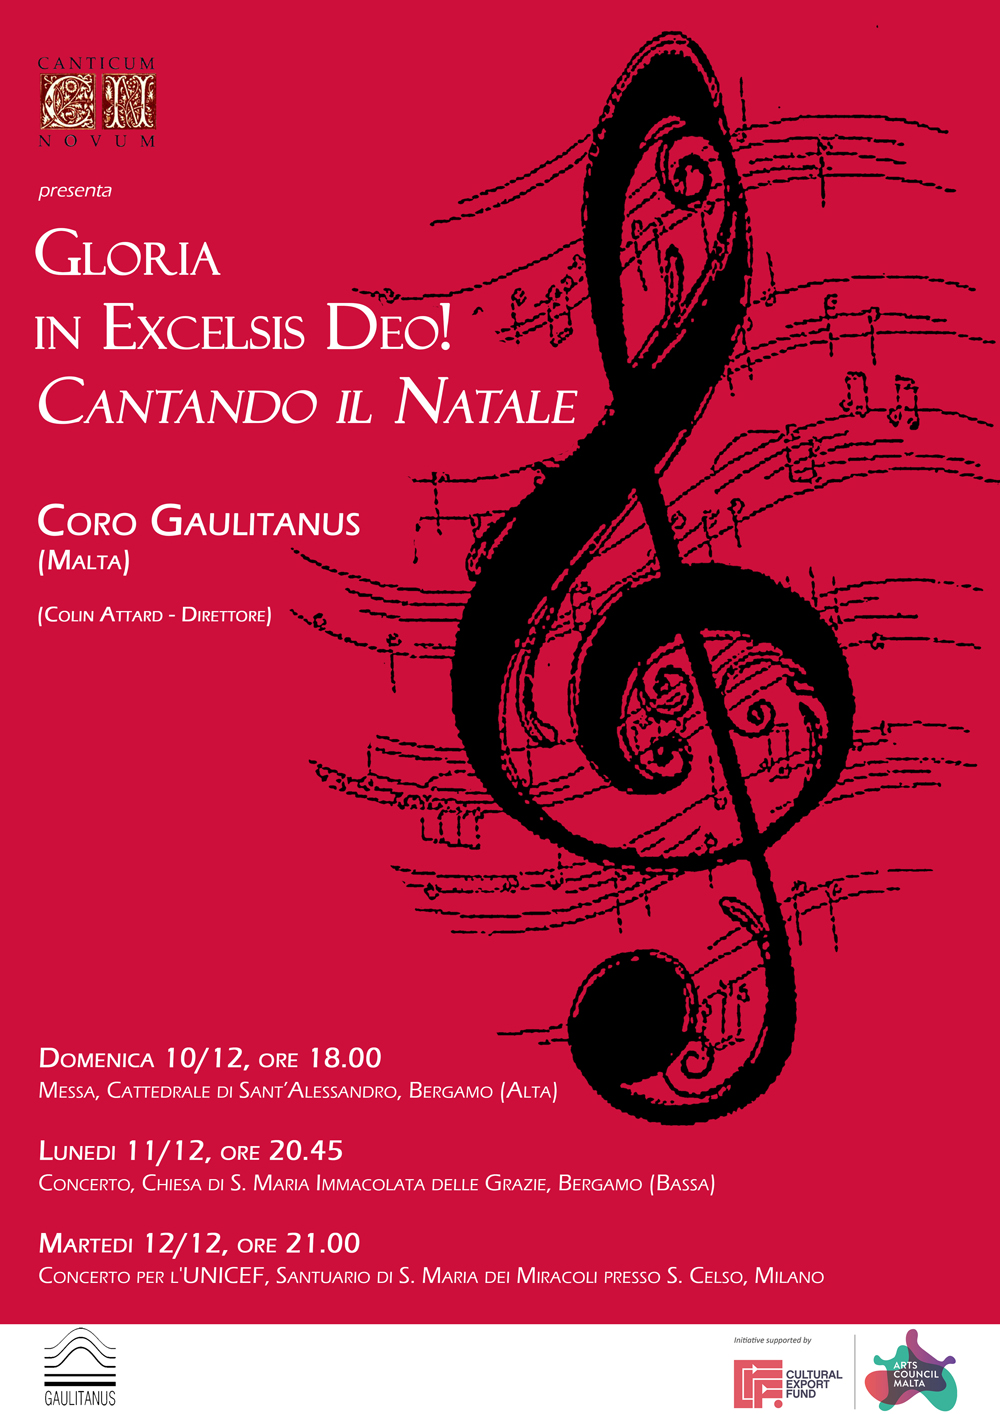 Gaulitanus Choir for Lombardia (Italy) concert-tour